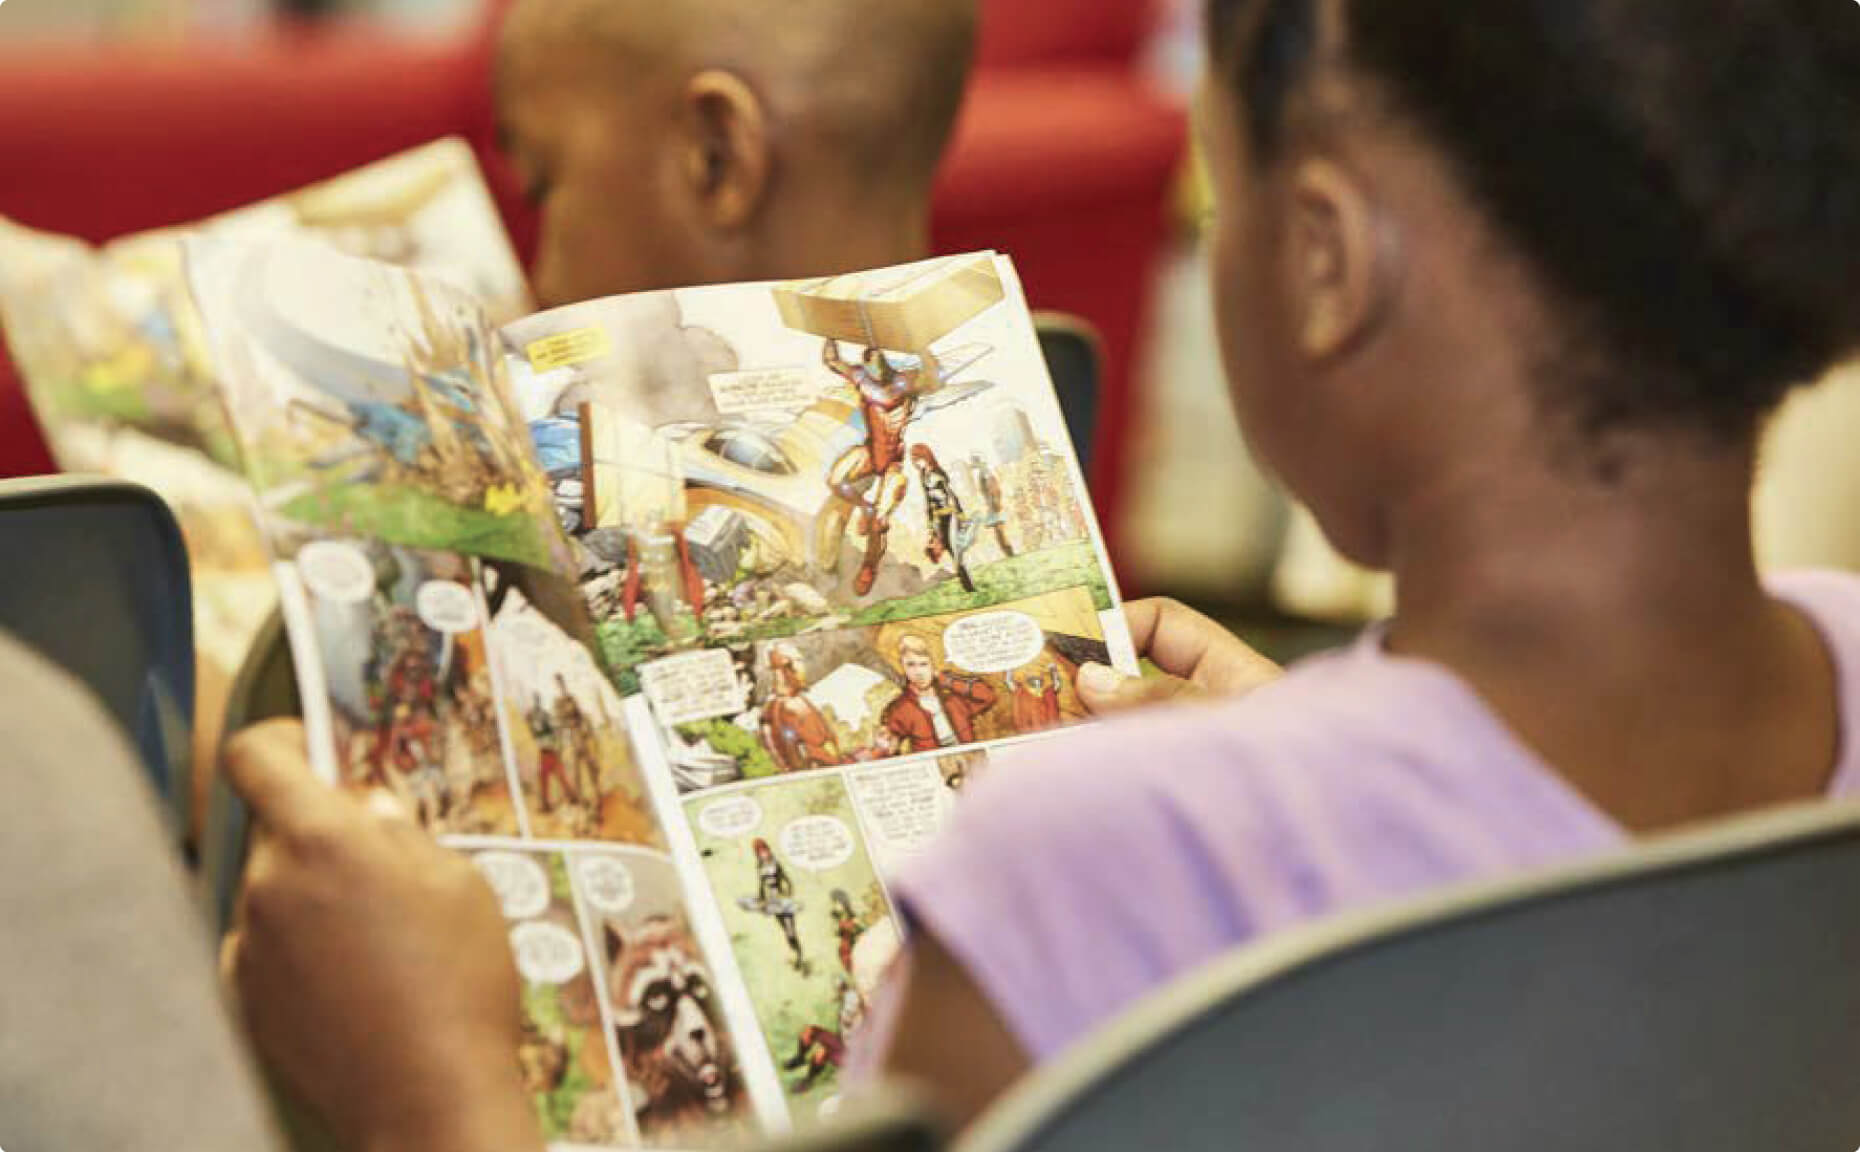 An elementary school student reads an educational comic book featuring Marvel characters discussing financial literacy skills.